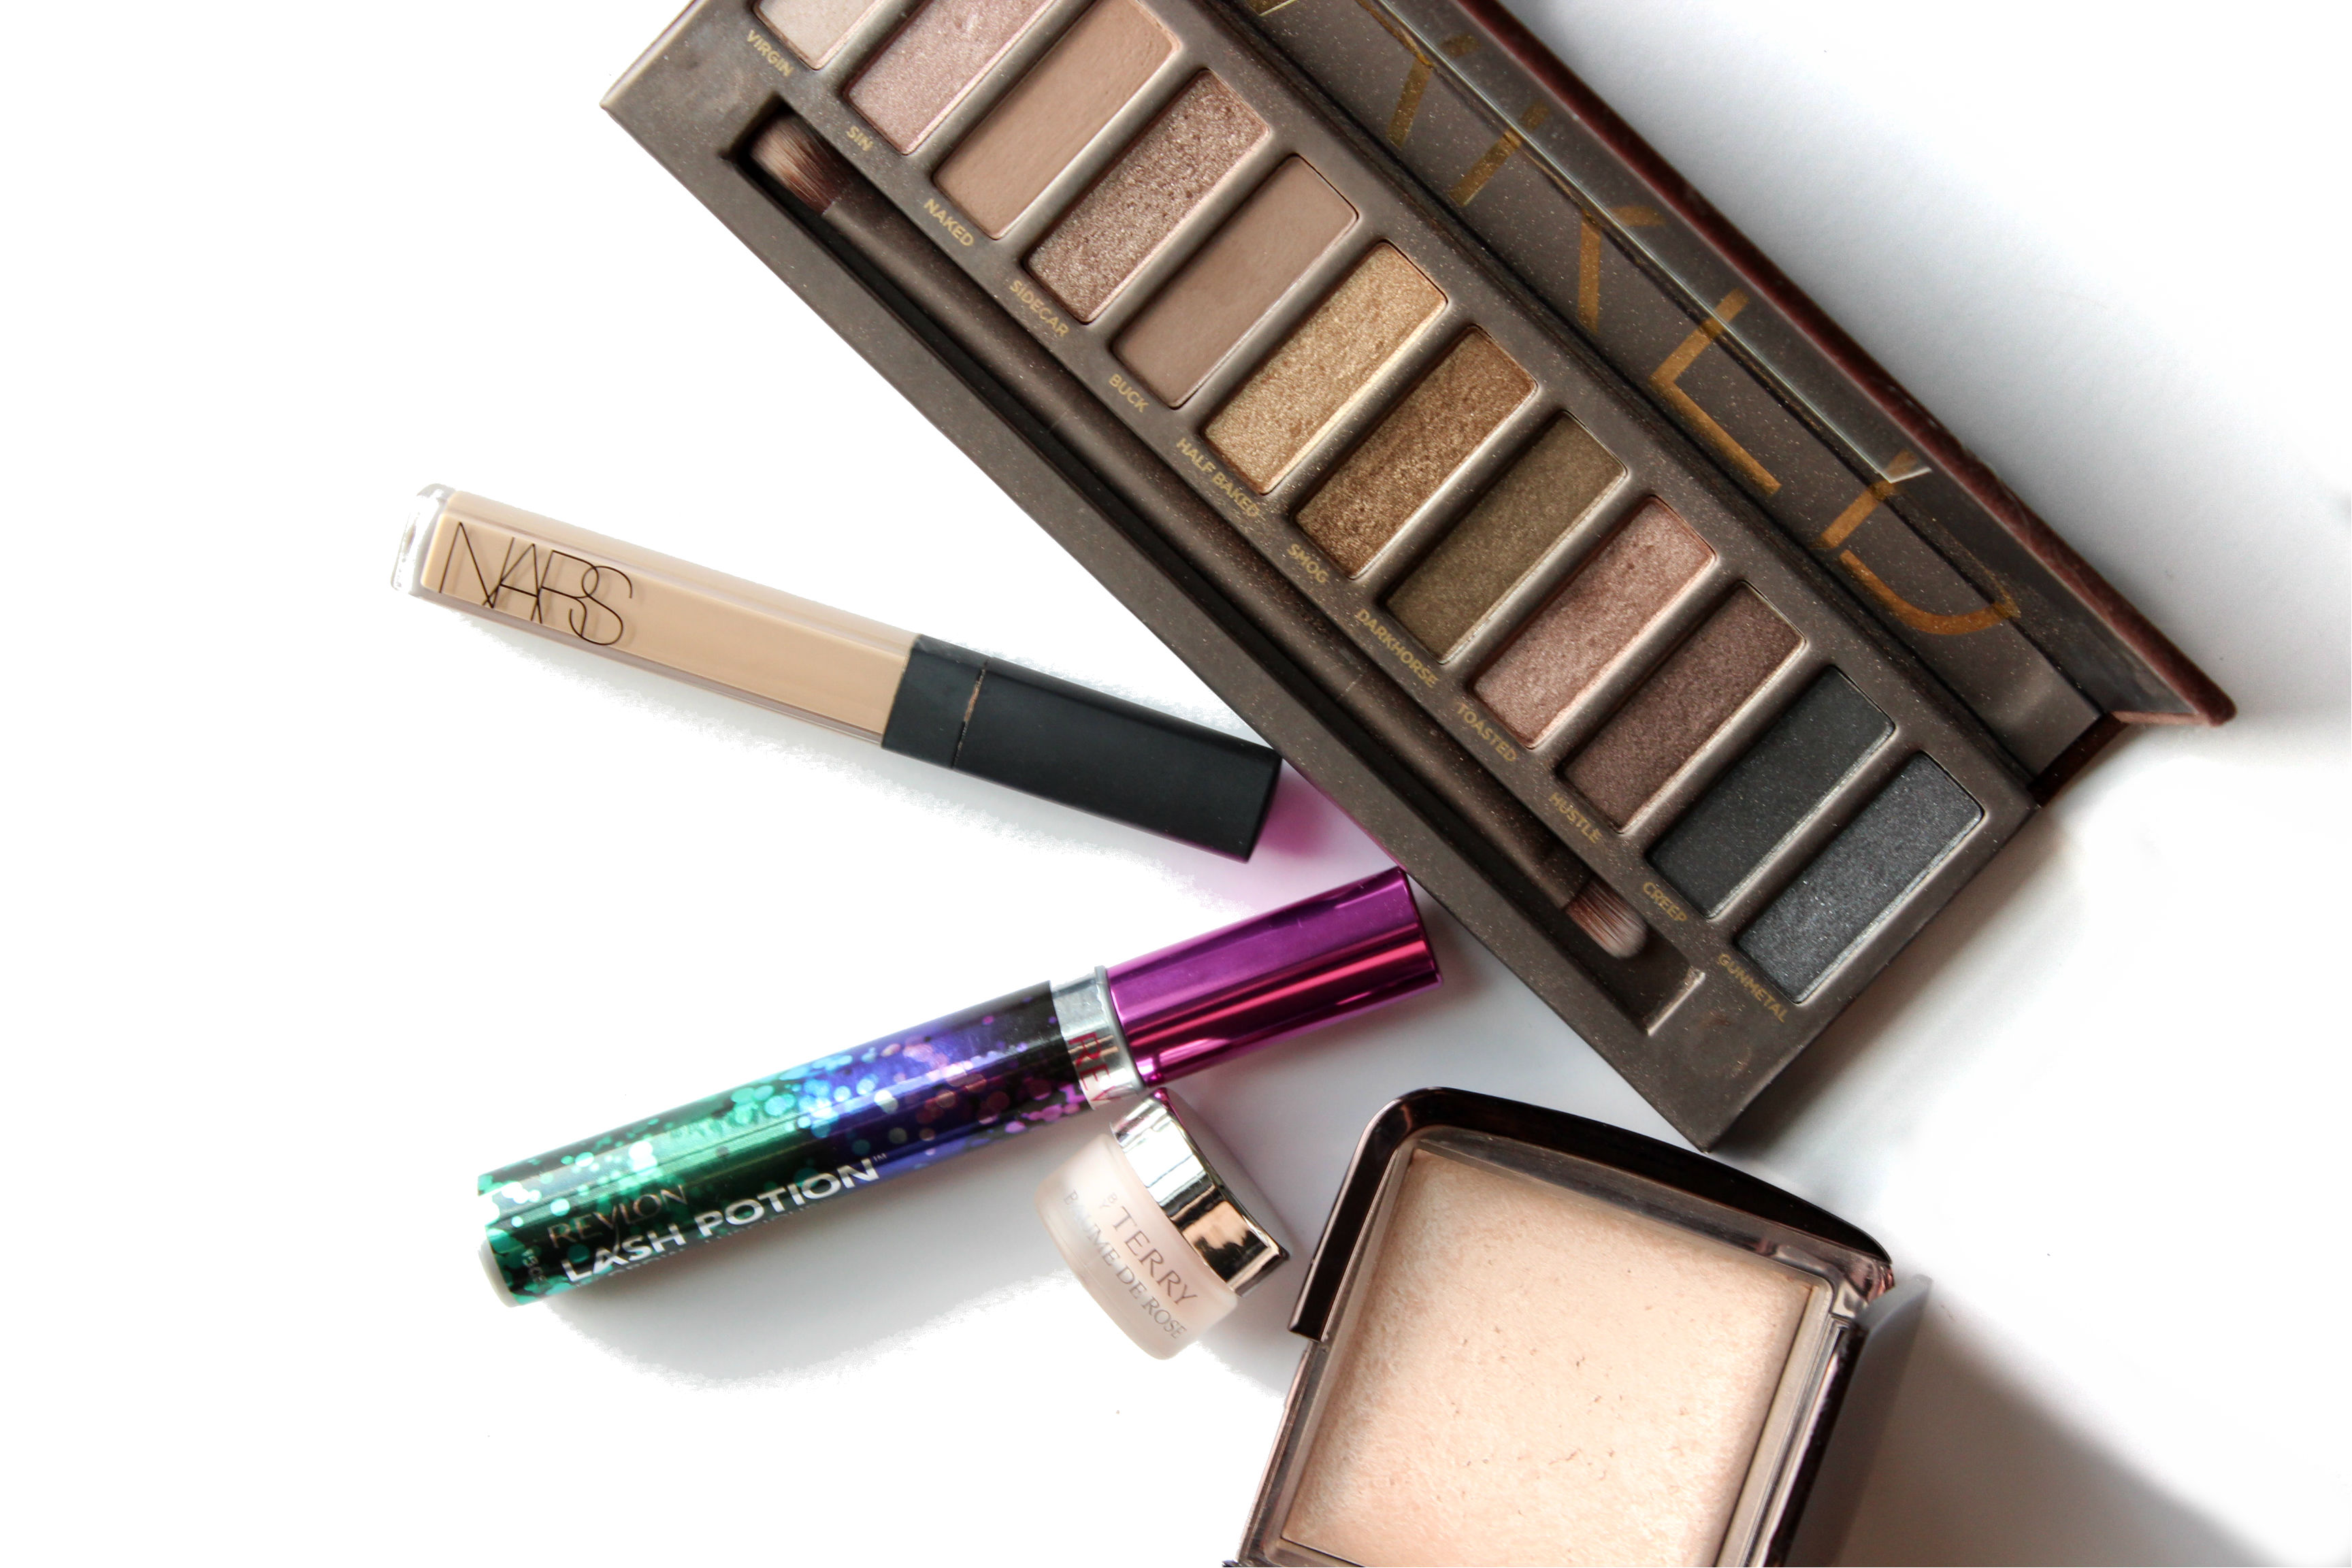 September Makeup Beauty Favorites | Brighterdarling.com Urban Decay Naked Palette NARS Radiant Creamy Concealer Revlon Lash Potion byTerrm Baume De Rose Hourglass Luminous Light